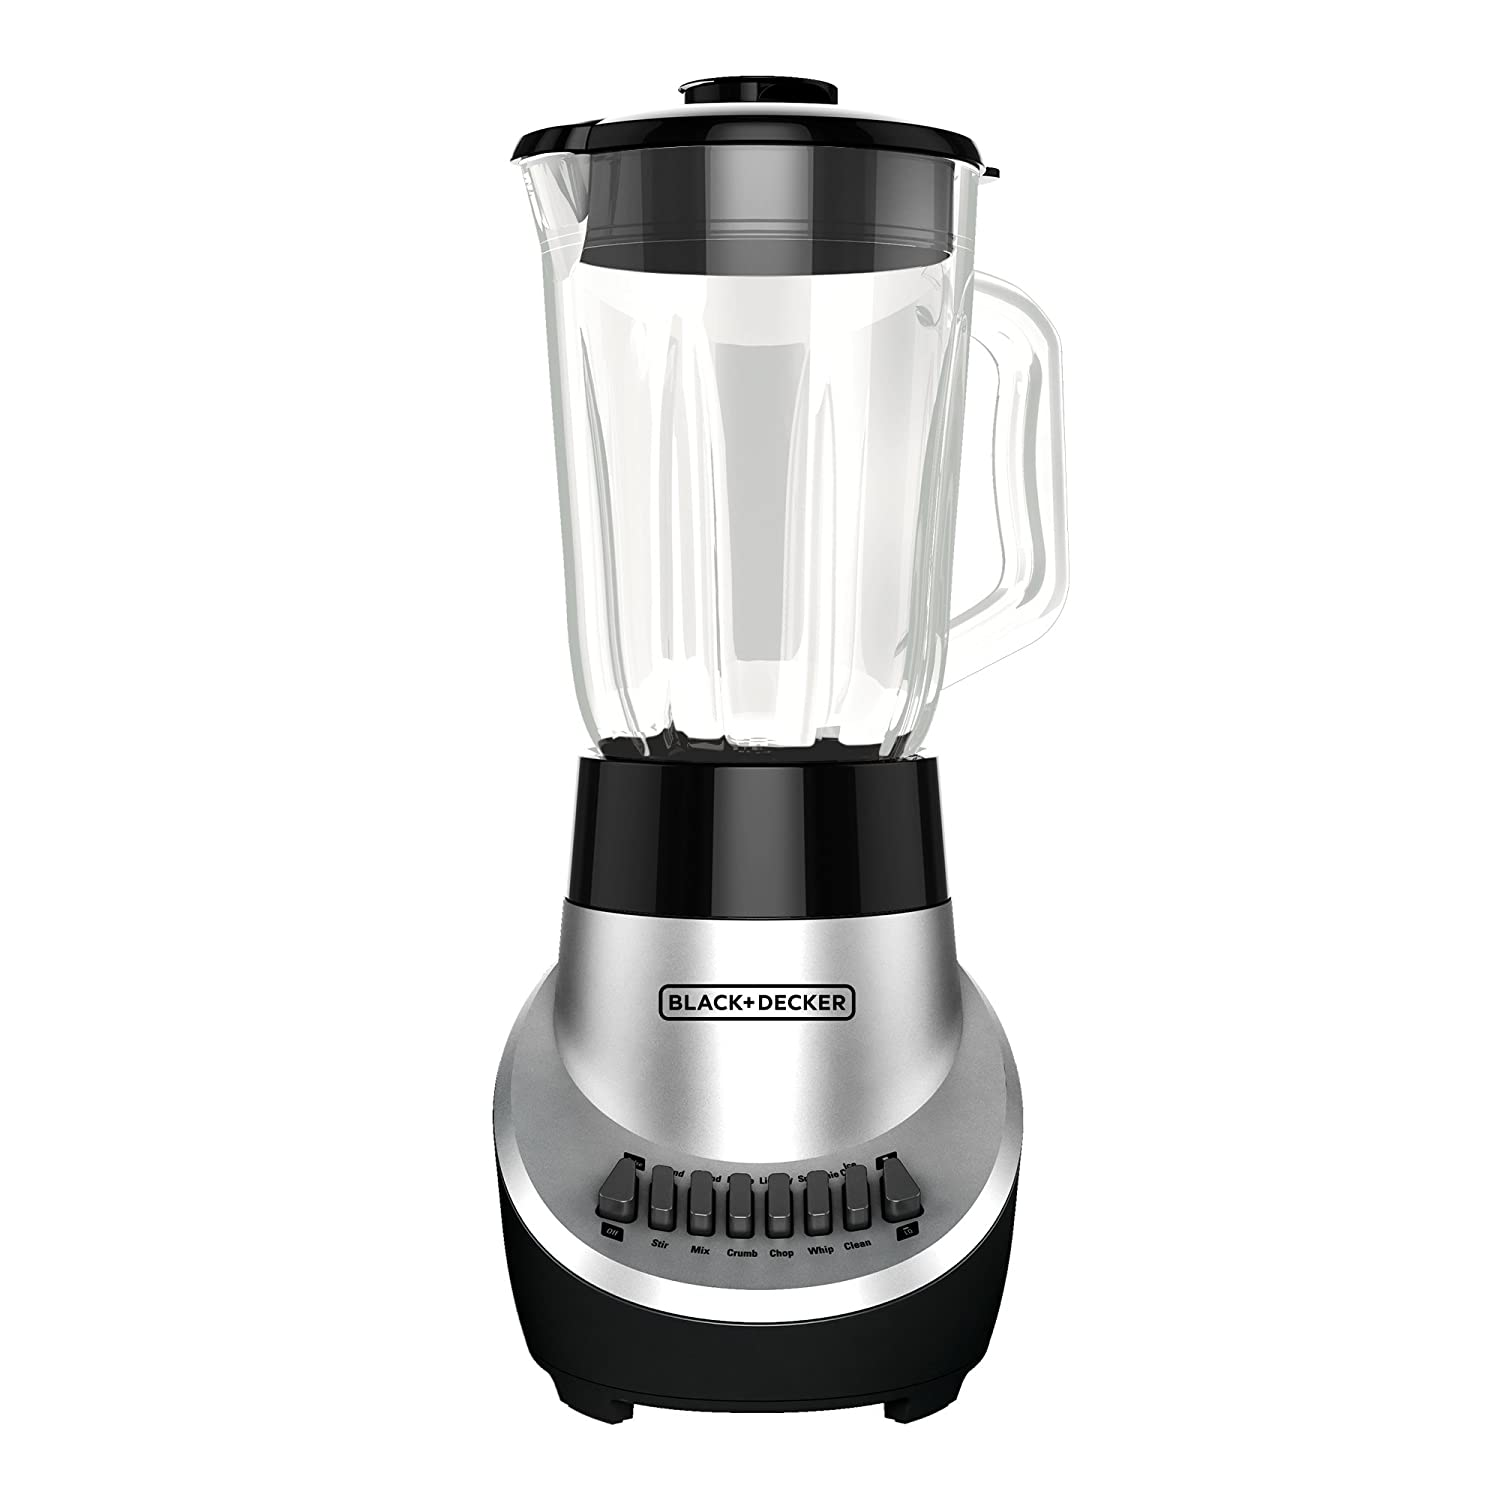 BLACK+DECKER BL1130SG FusionBlade Blender with 6-Cup Glass Jar, 12-Speed Settings, Silver Blender